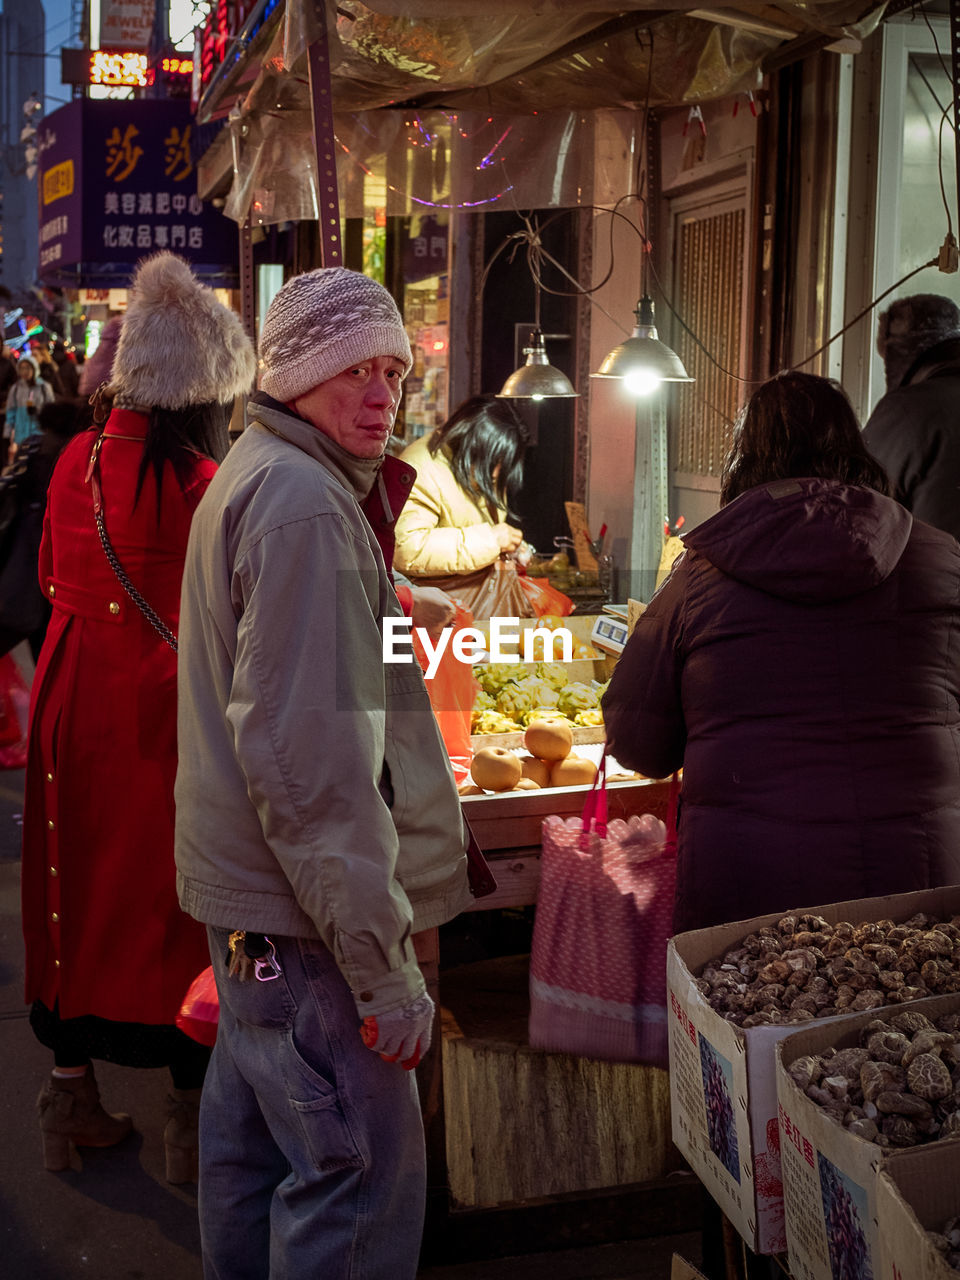 real people, women, market, adult, men, clothing, retail, three quarter length, winter, warm clothing, lifestyles, leisure activity, market stall, rear view, incidental people, group of people, shopping, people, illuminated, for sale, buying, retail display, sale